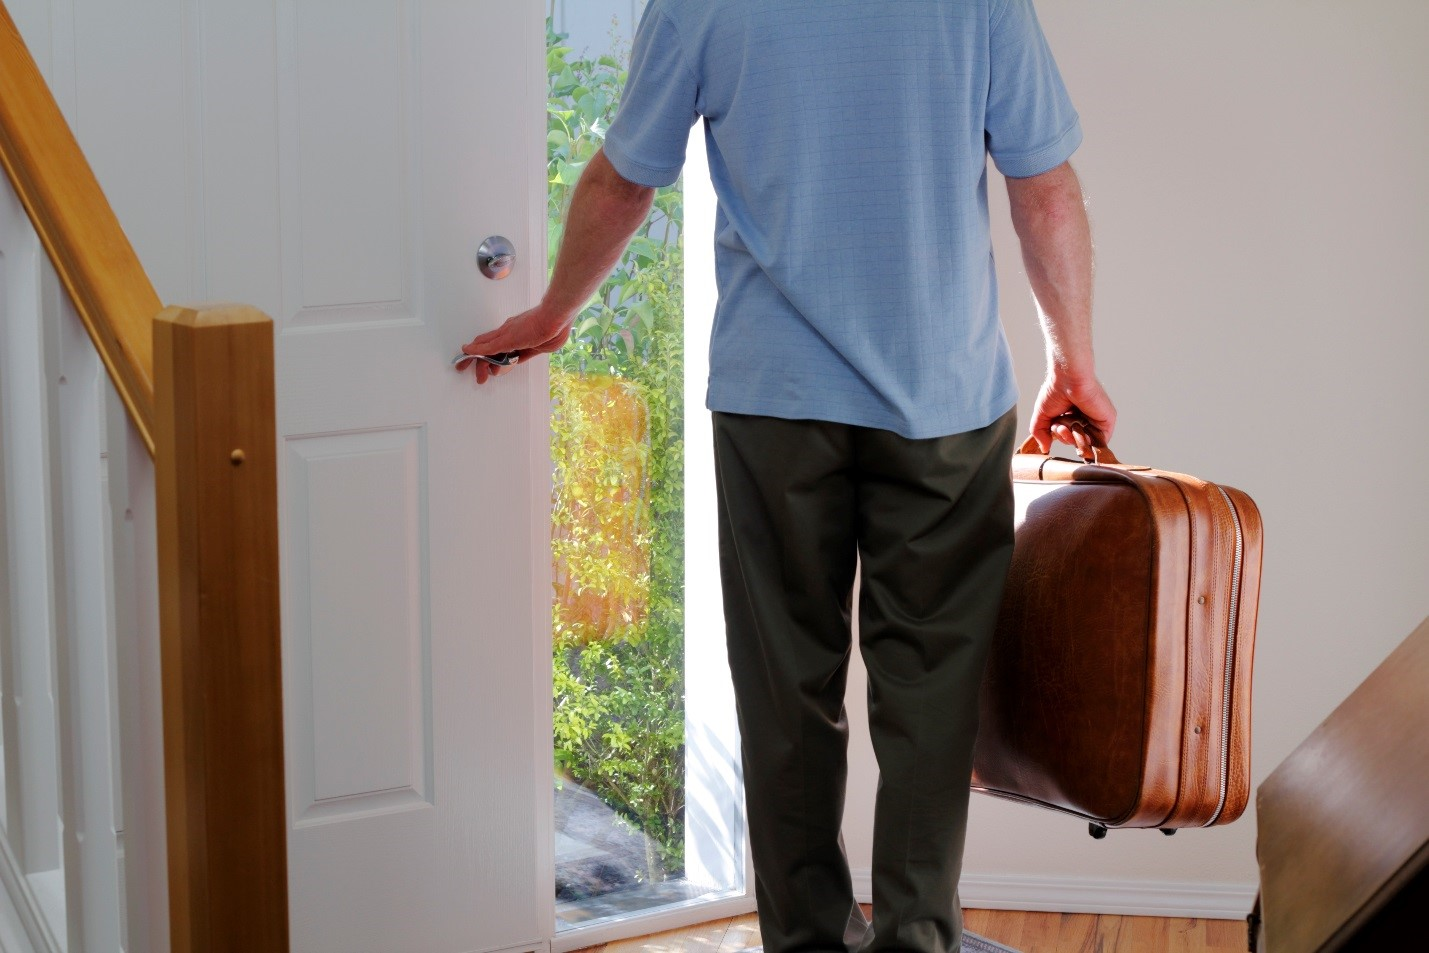 Here's How Smart Locks Help With Home Security